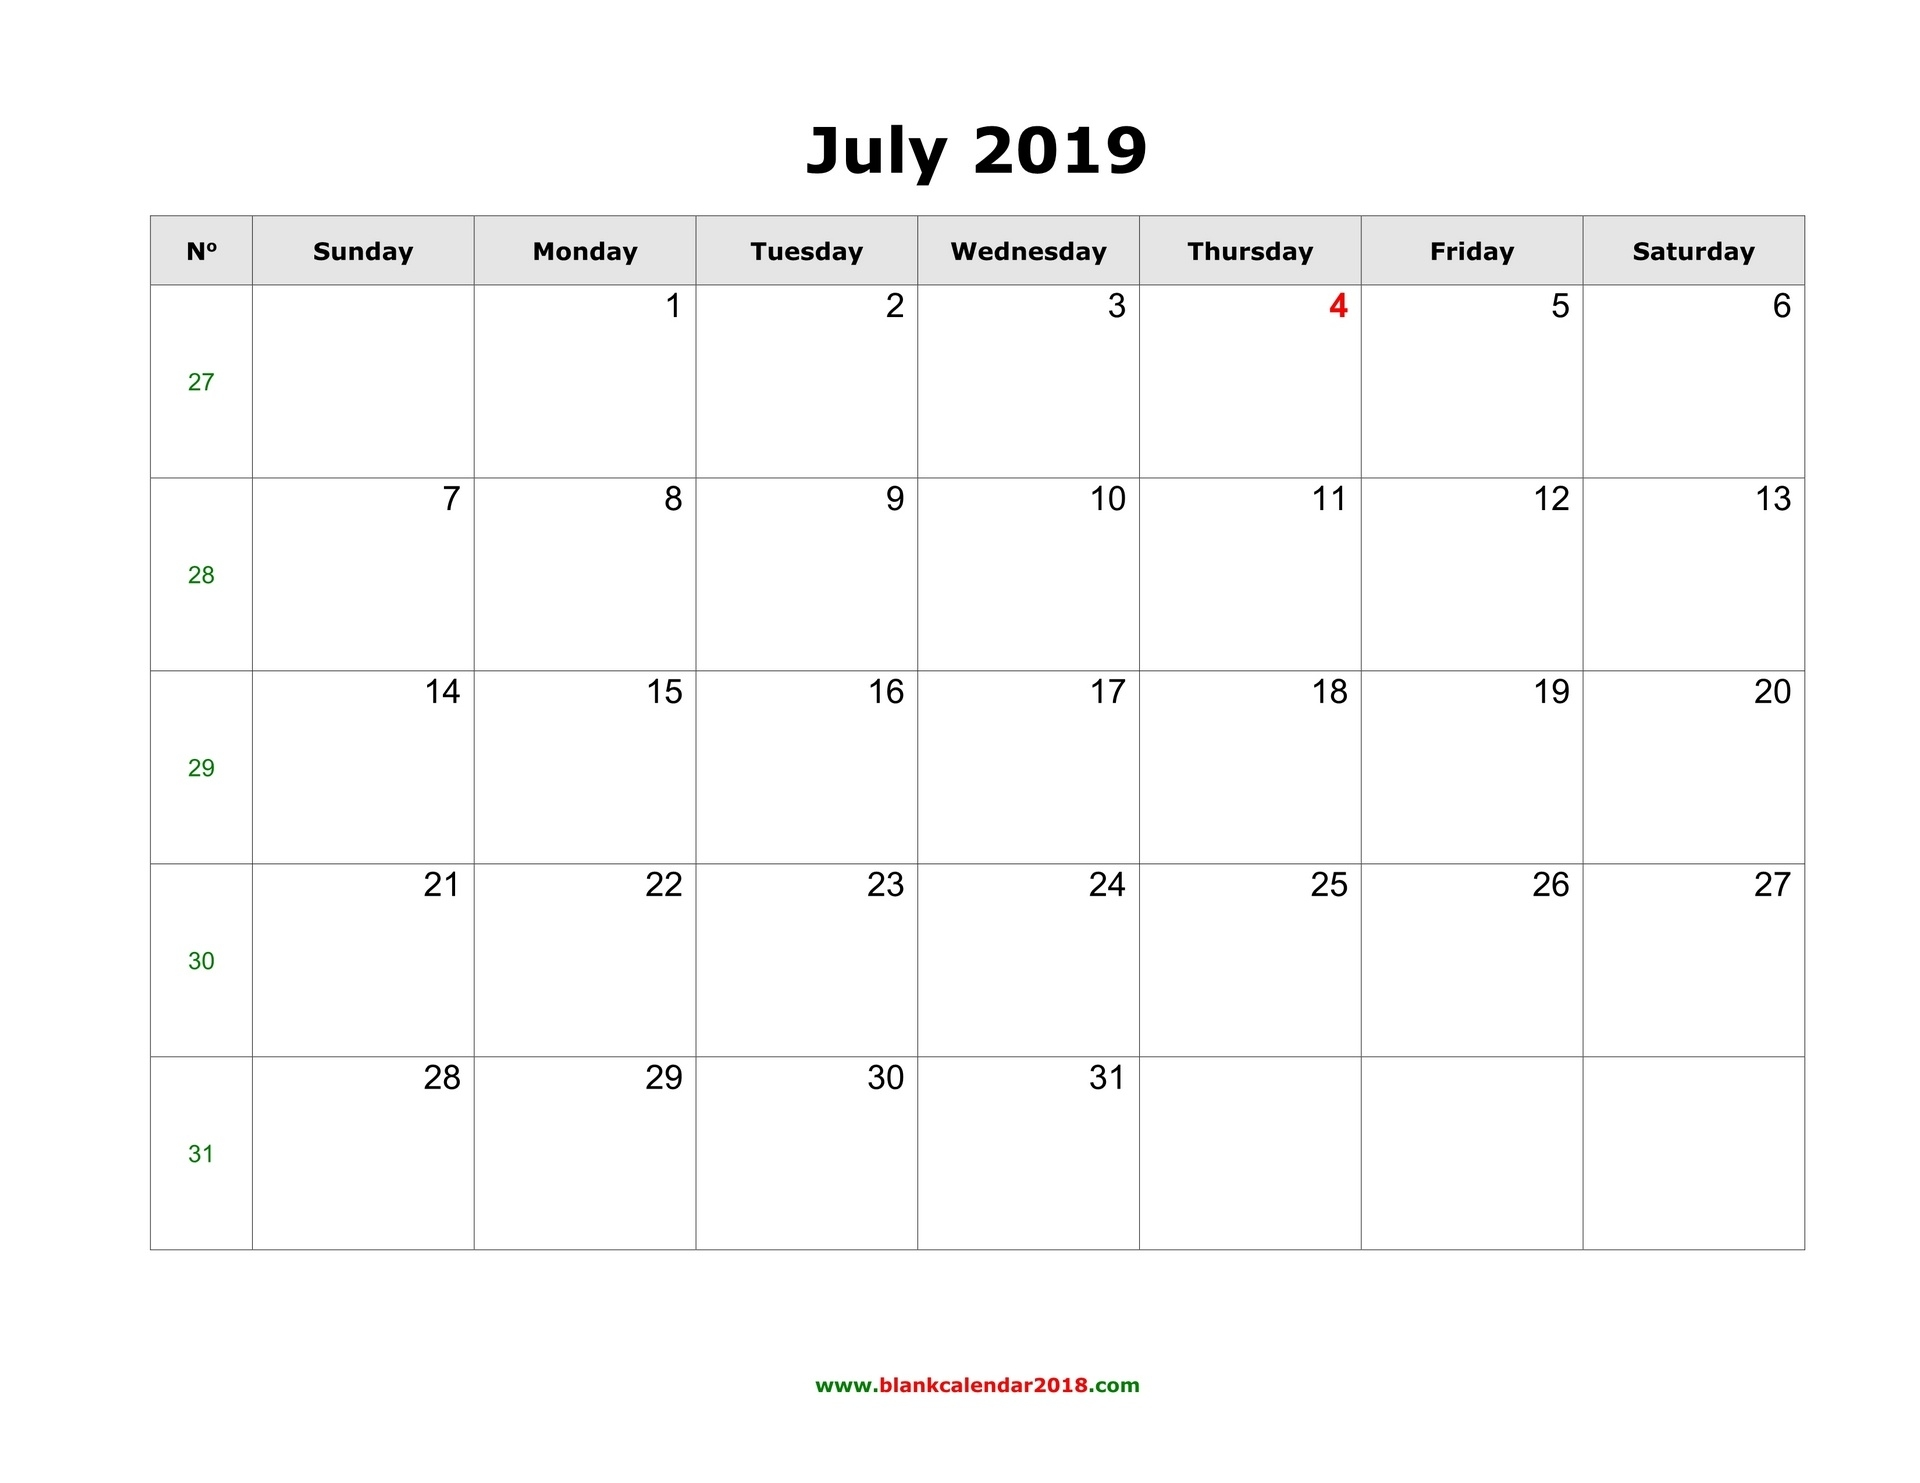 Blank Calendar For July 2019_Blank Calendar You Can Type In